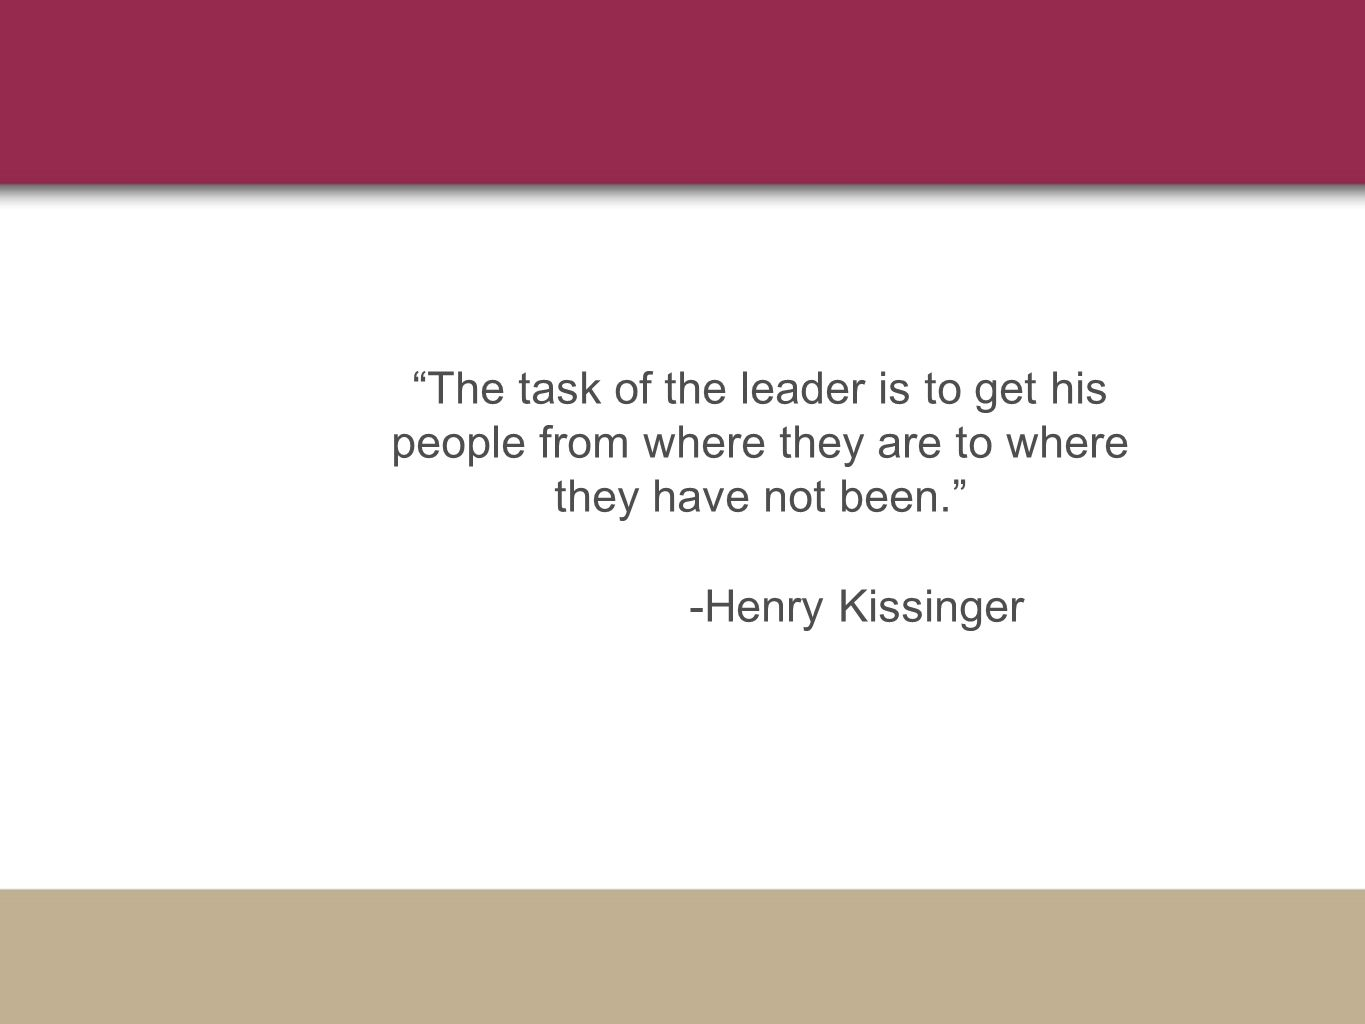 The task of the leader is to get his people from where they are to where they have not been. -Henry Kissinger